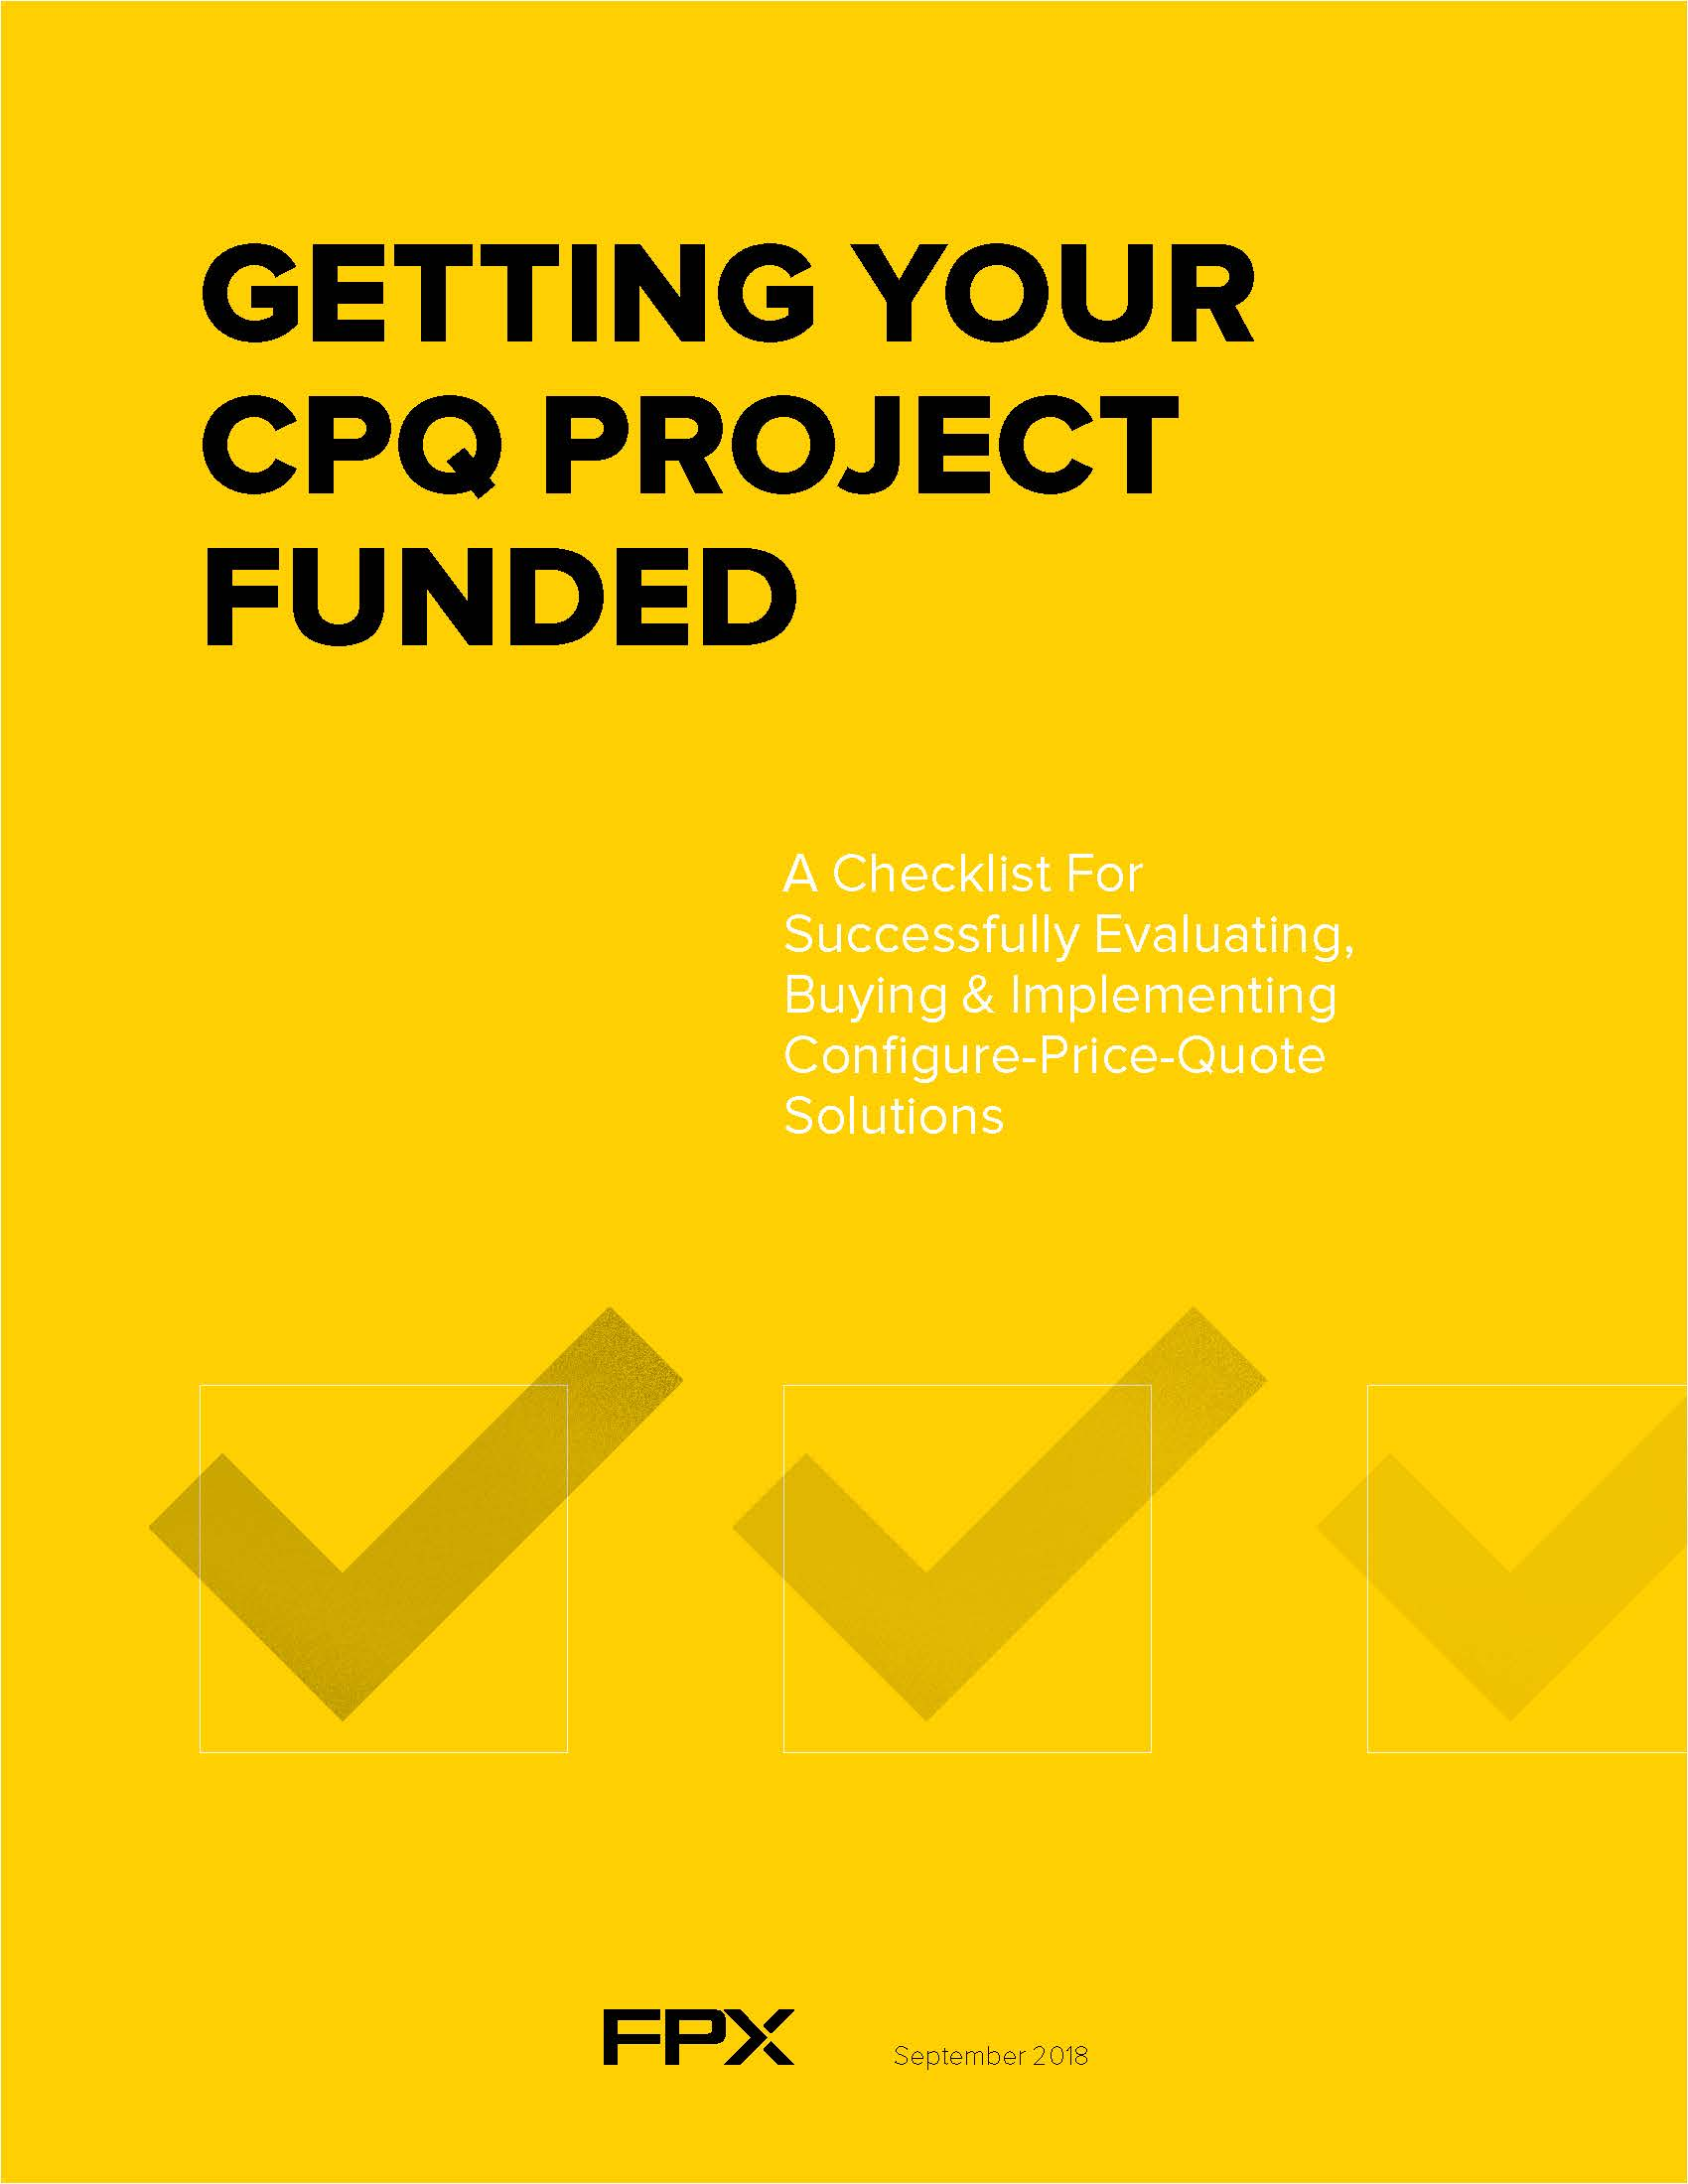 Getting Your CPQ Project Funded